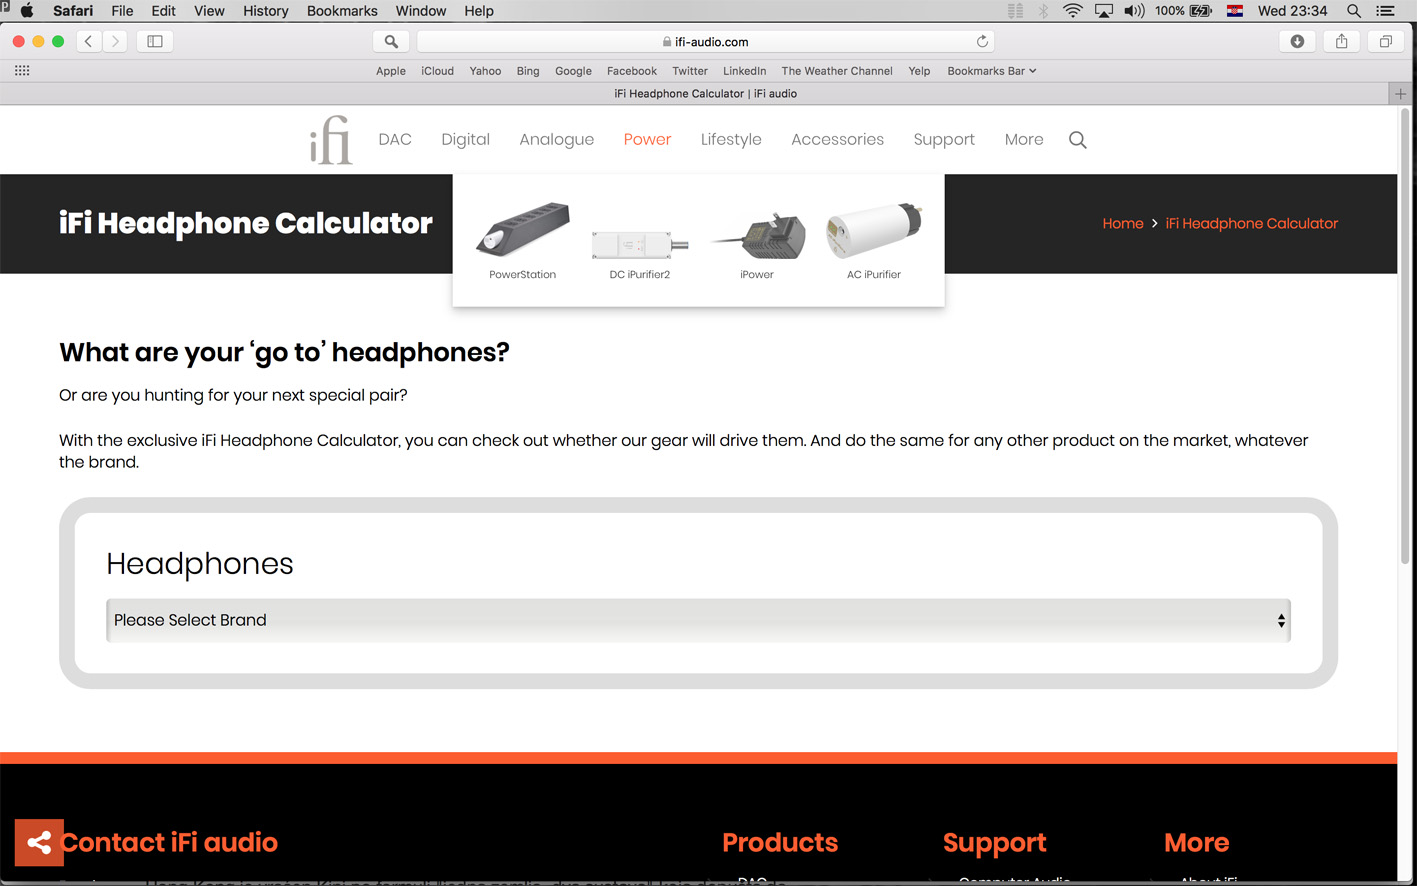 iFi Headphone Calculator power